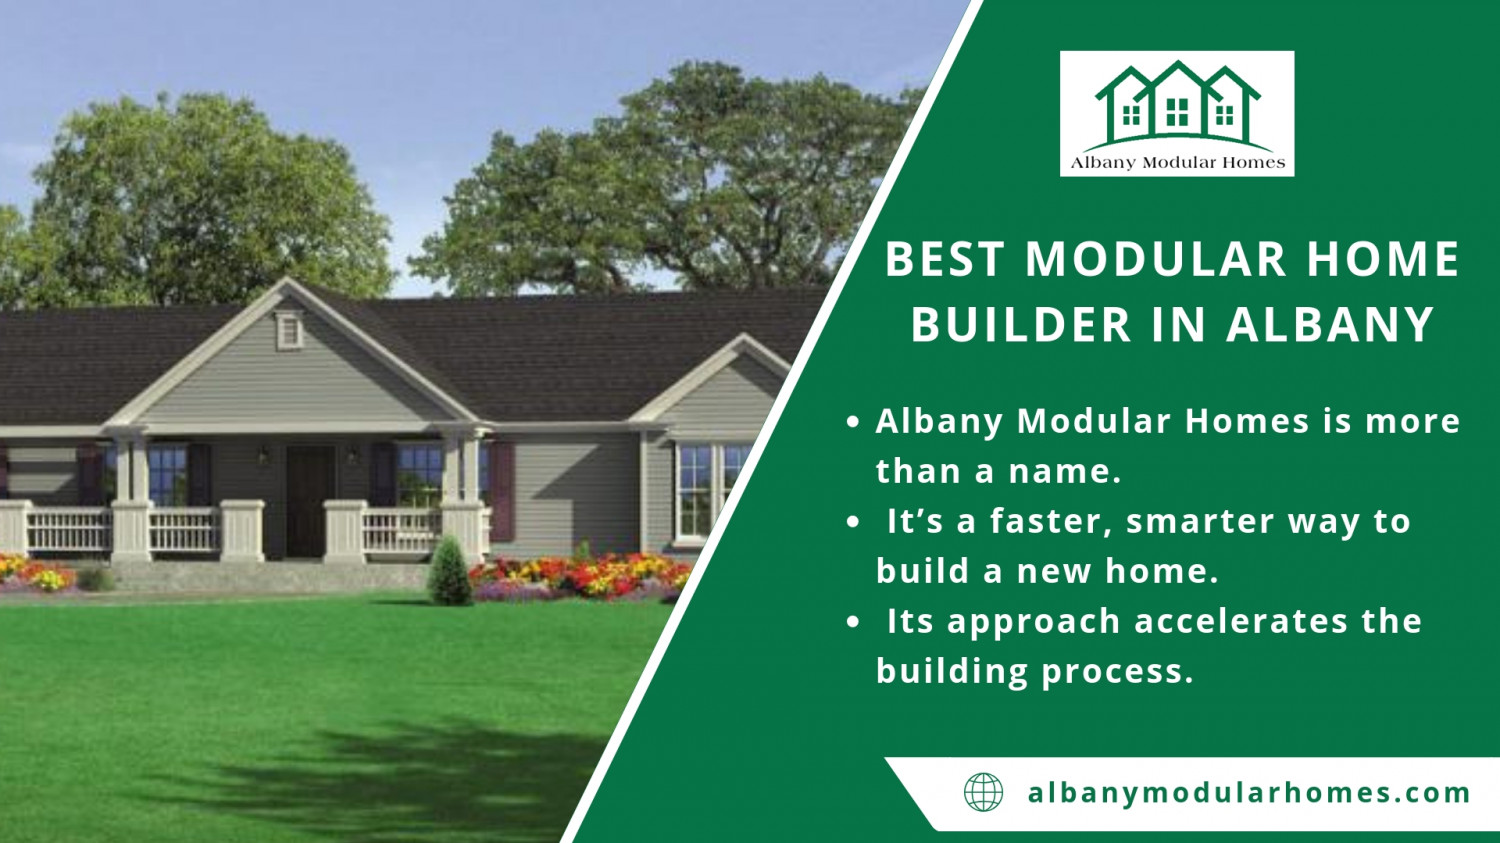 Best Modular Home Builder In Albany Infographic